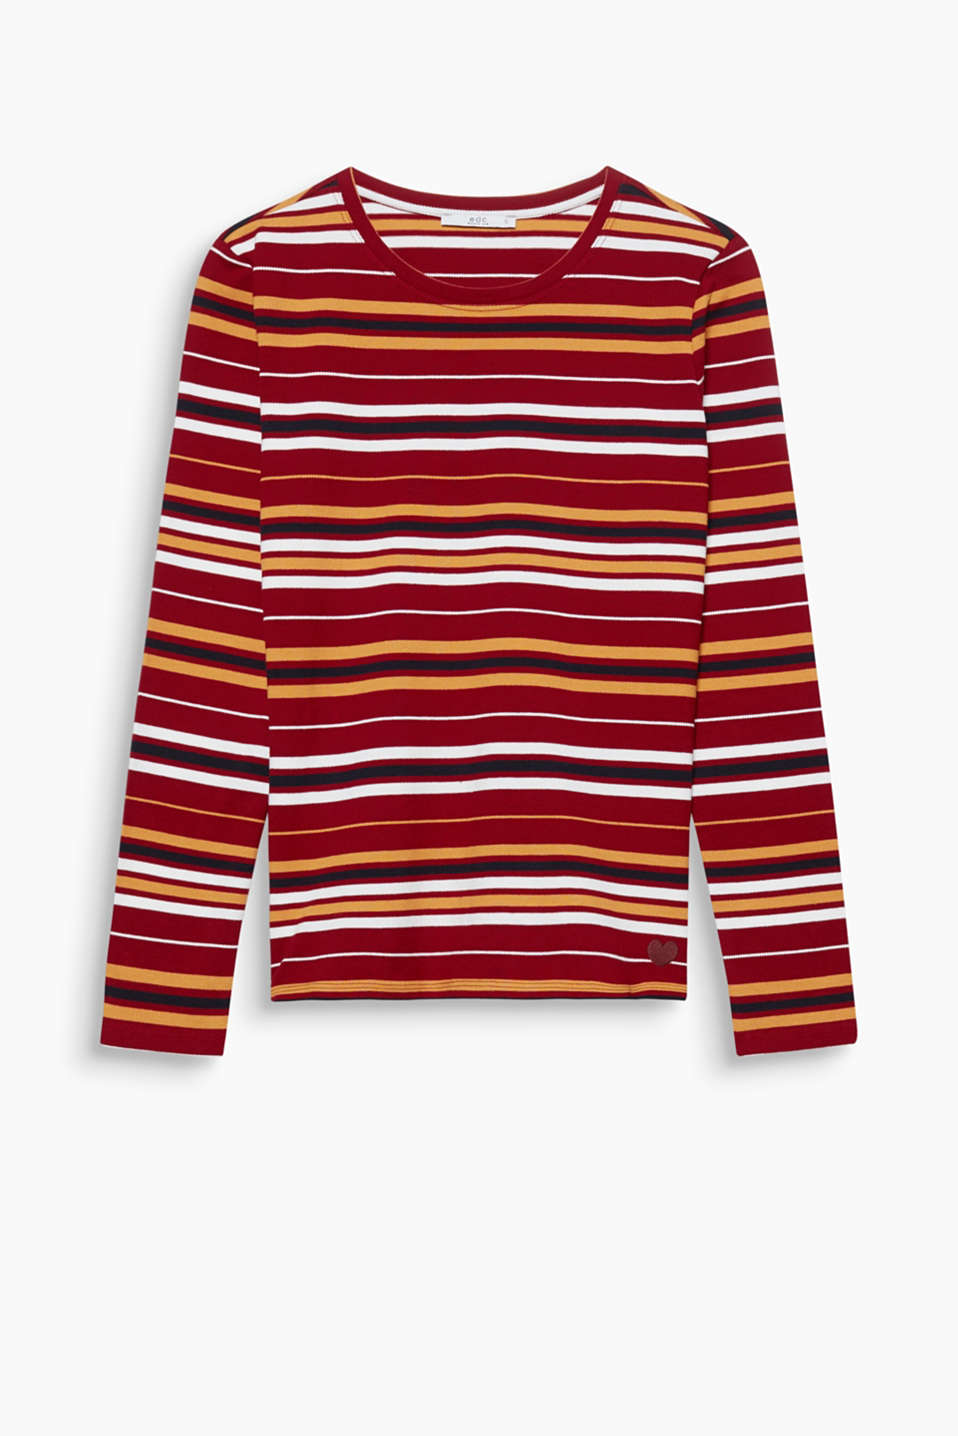 Long sleeve top made of pure cotton piqué with stripes in the very latest autumn colours